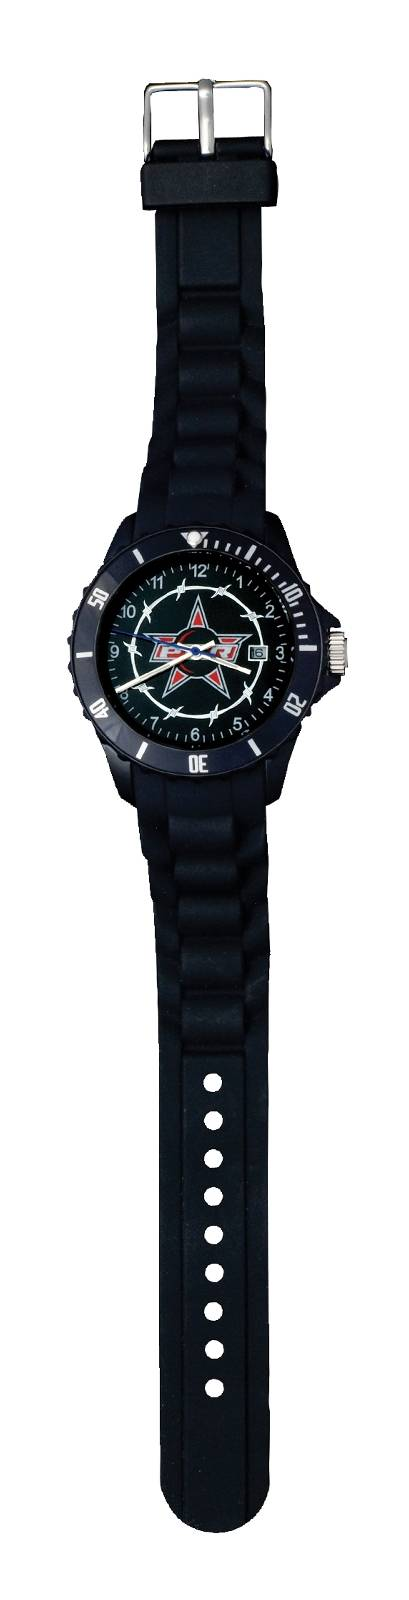 Montana Silversmiths PBR Midnight on The Range Sports Watch